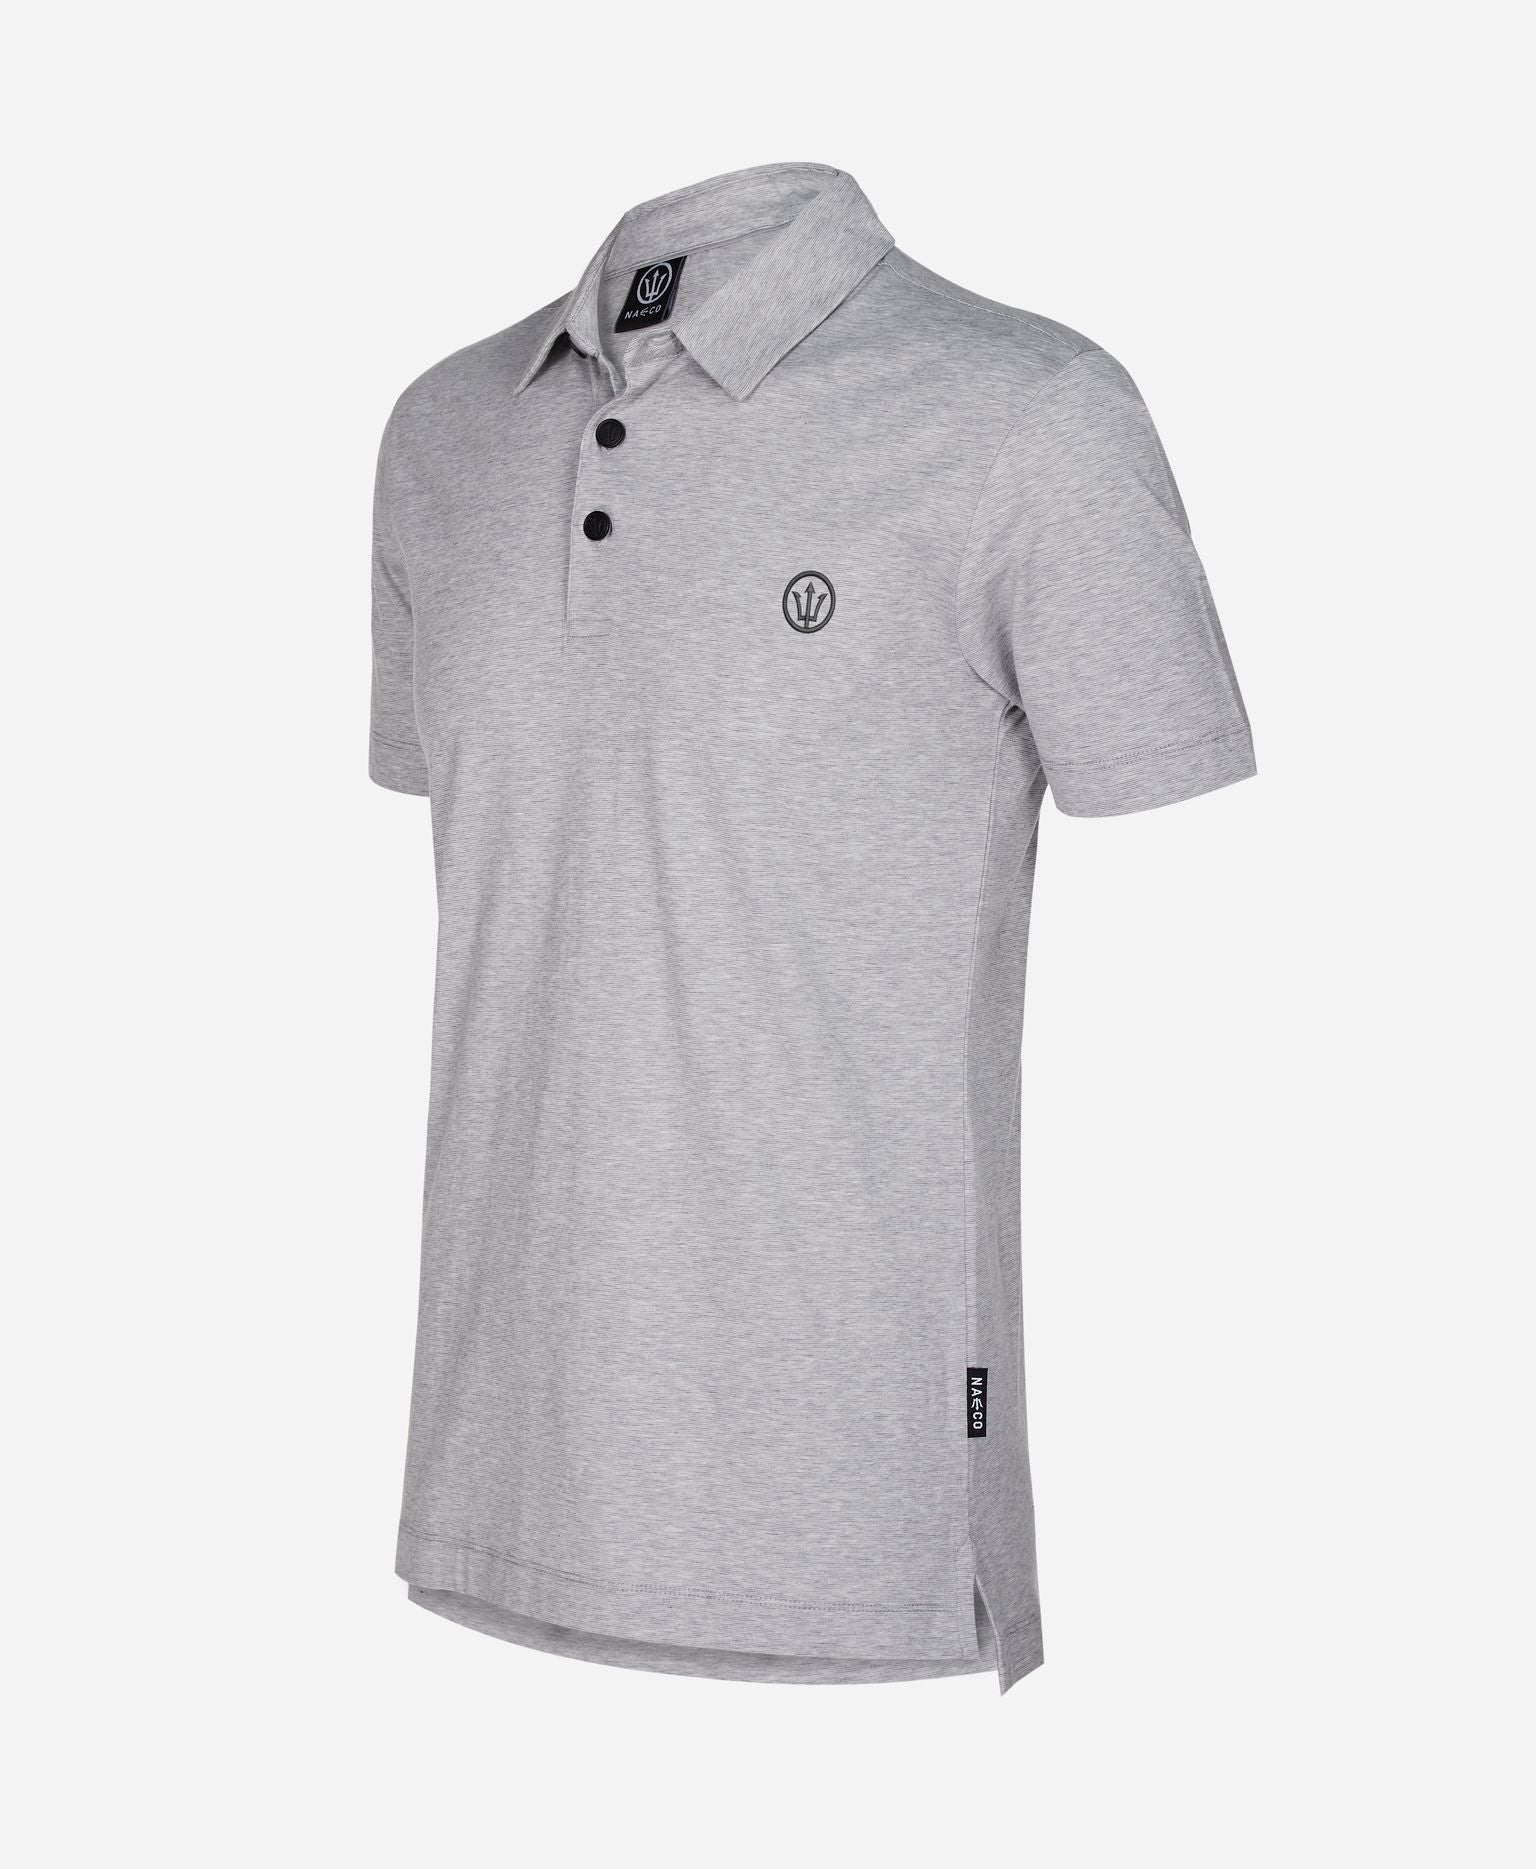 Organic Resort Polo - Beluga Grey